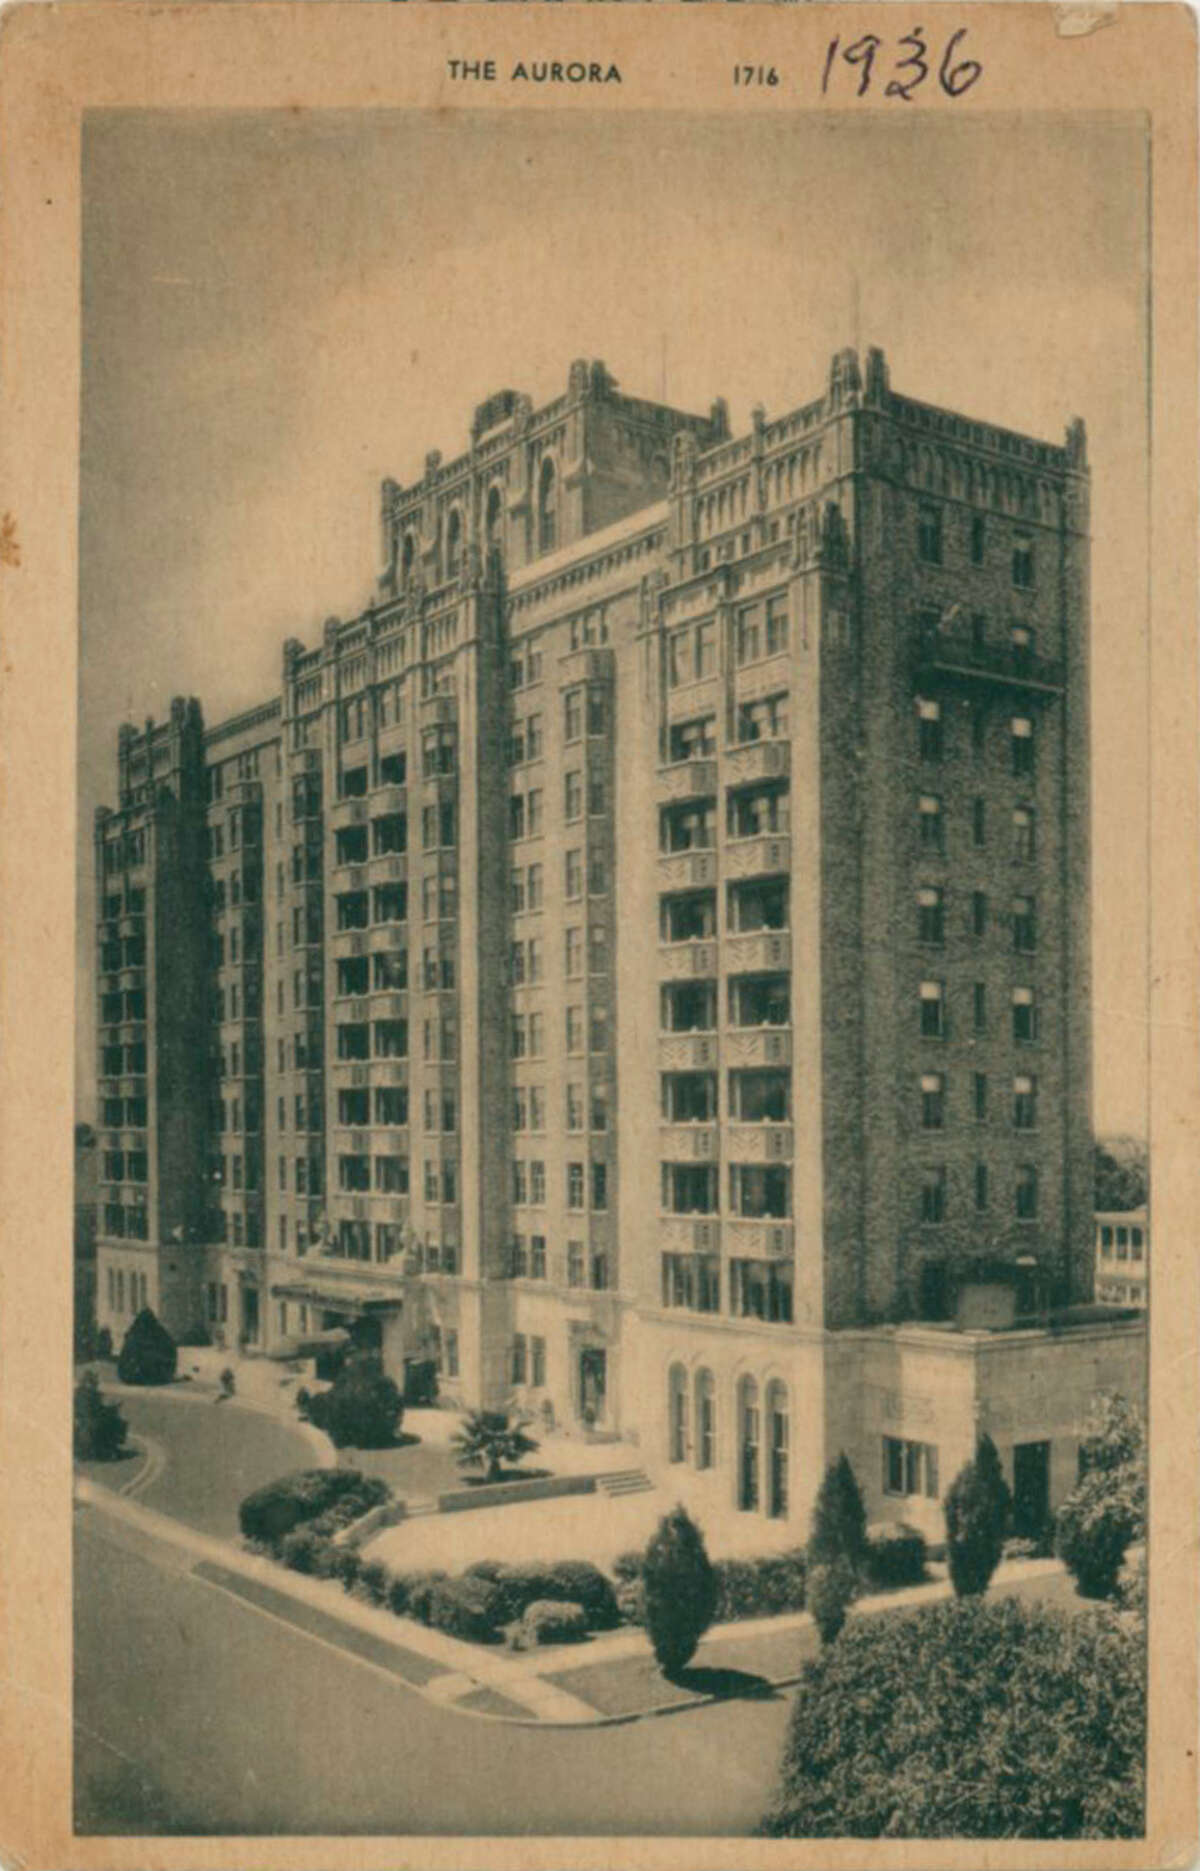 The Aurora Apartments at 509 Howard St. are seen in 1936.